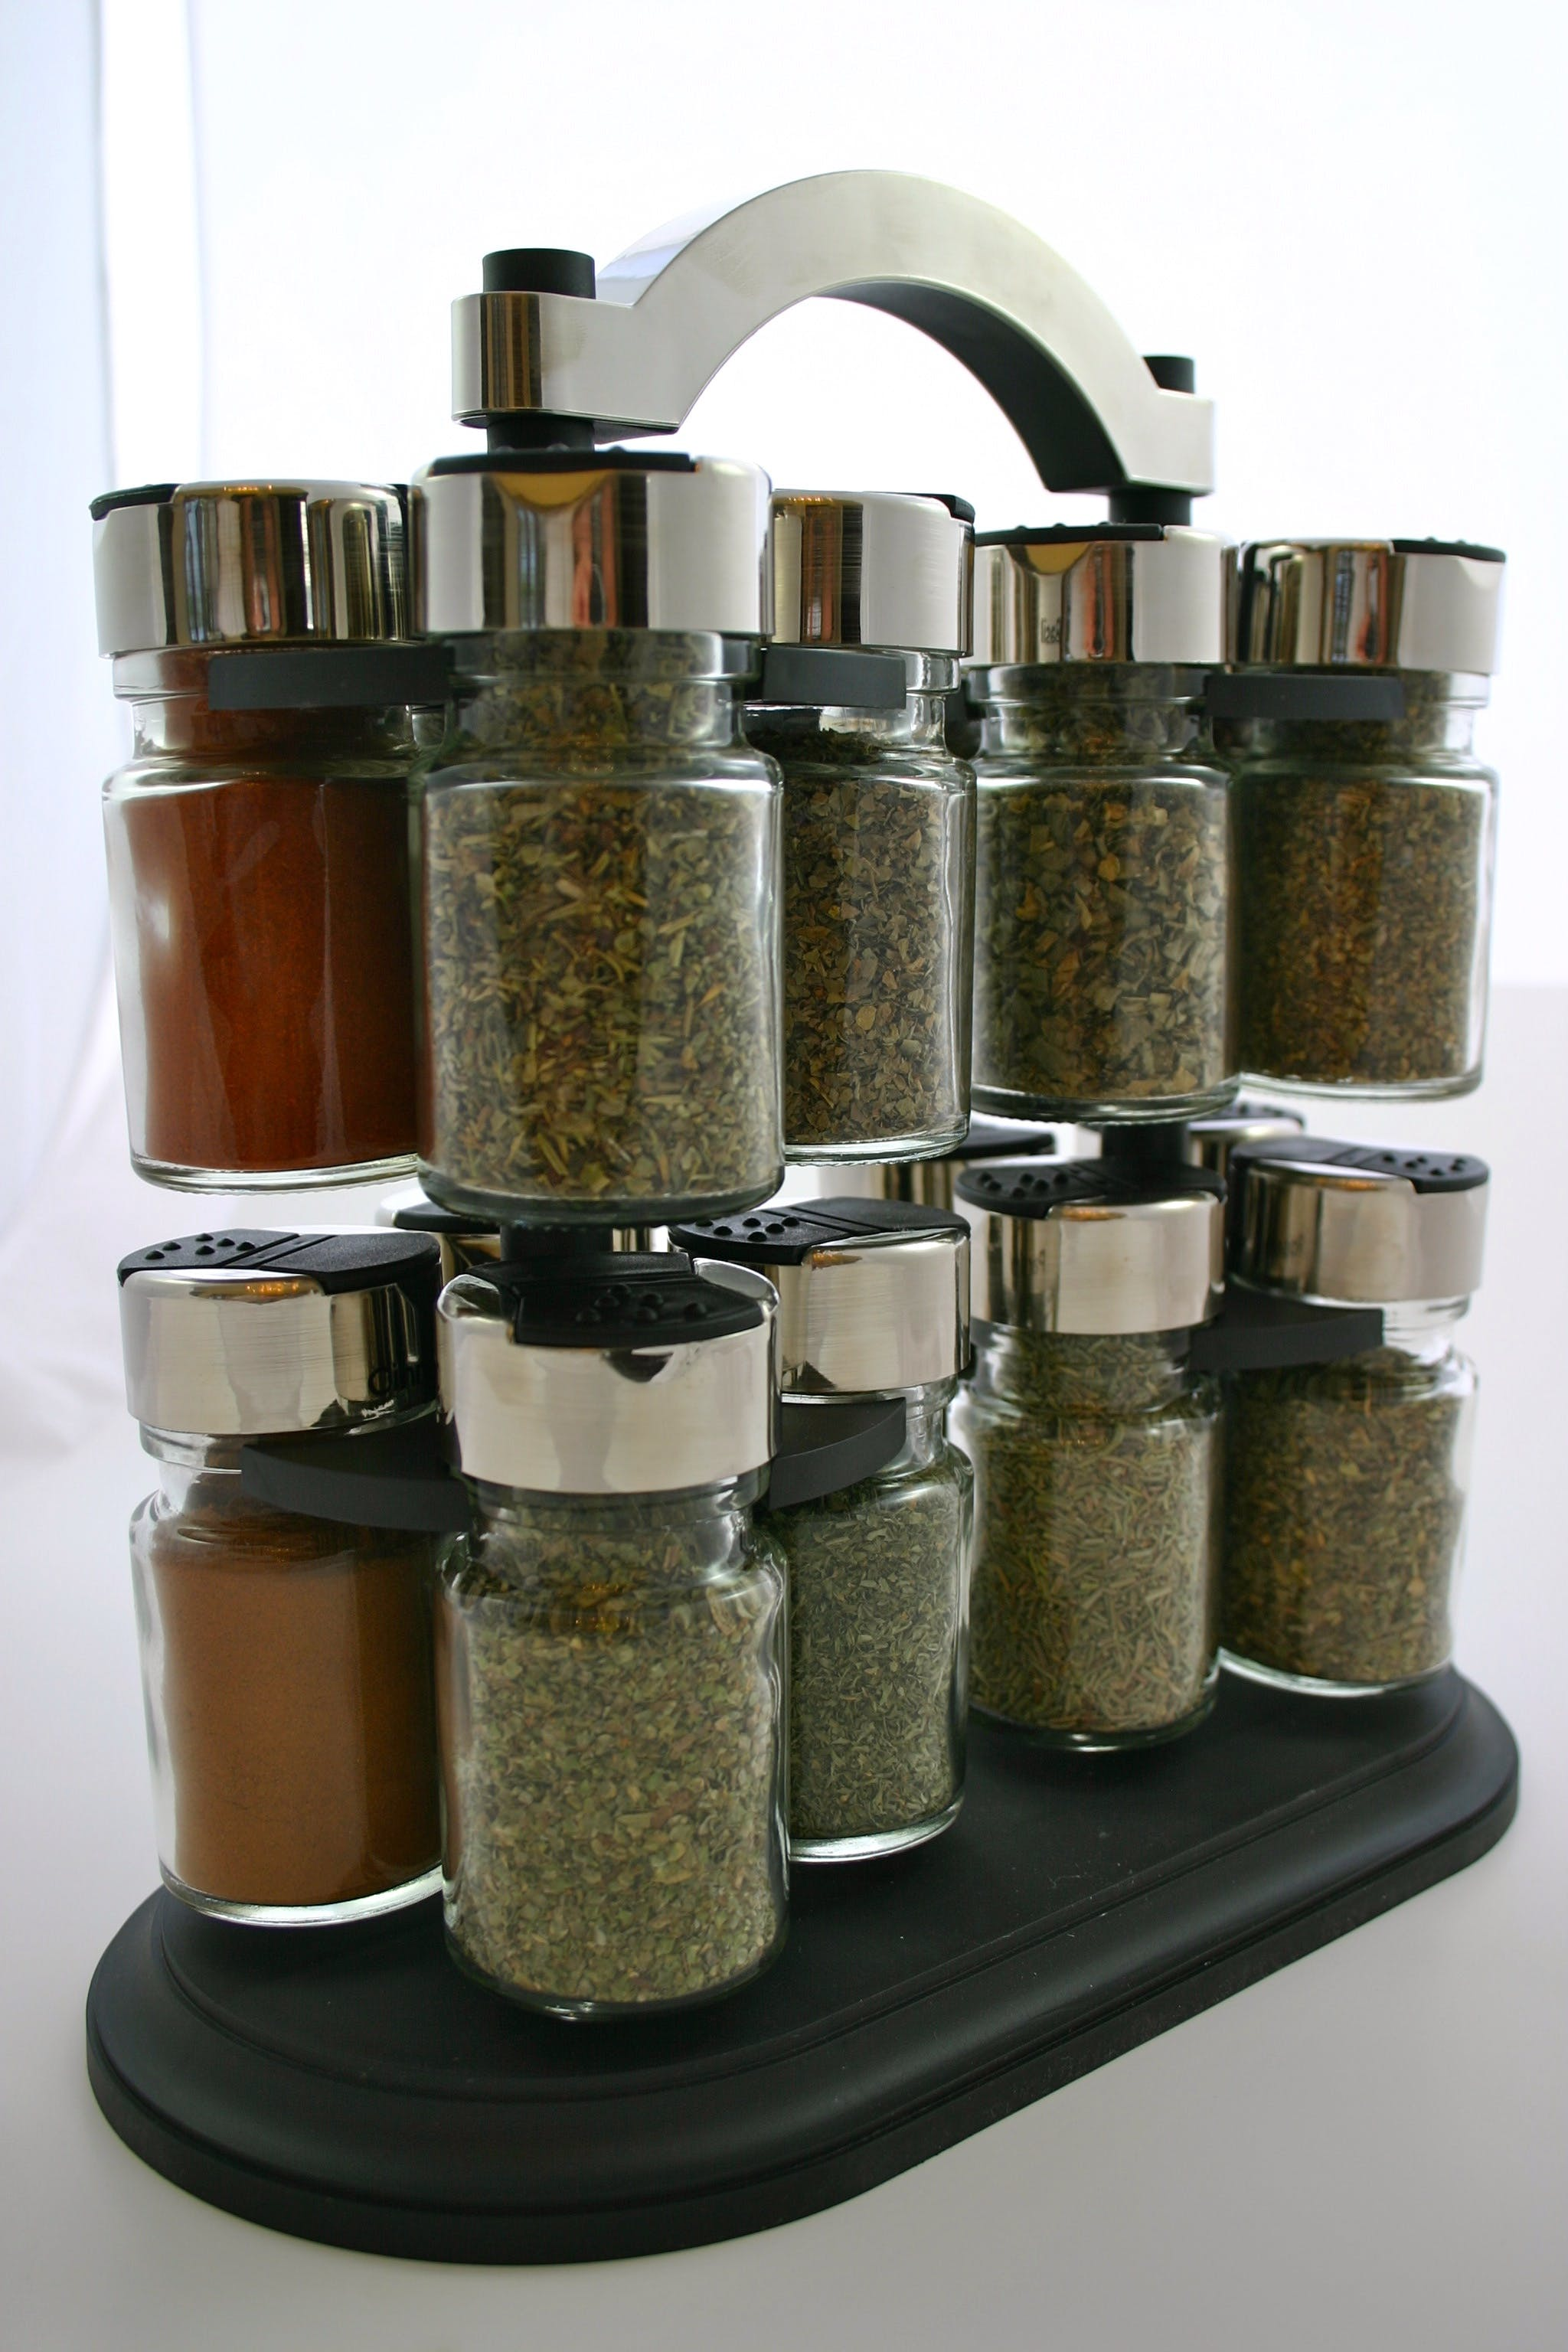 Free stock photo of herb, spice